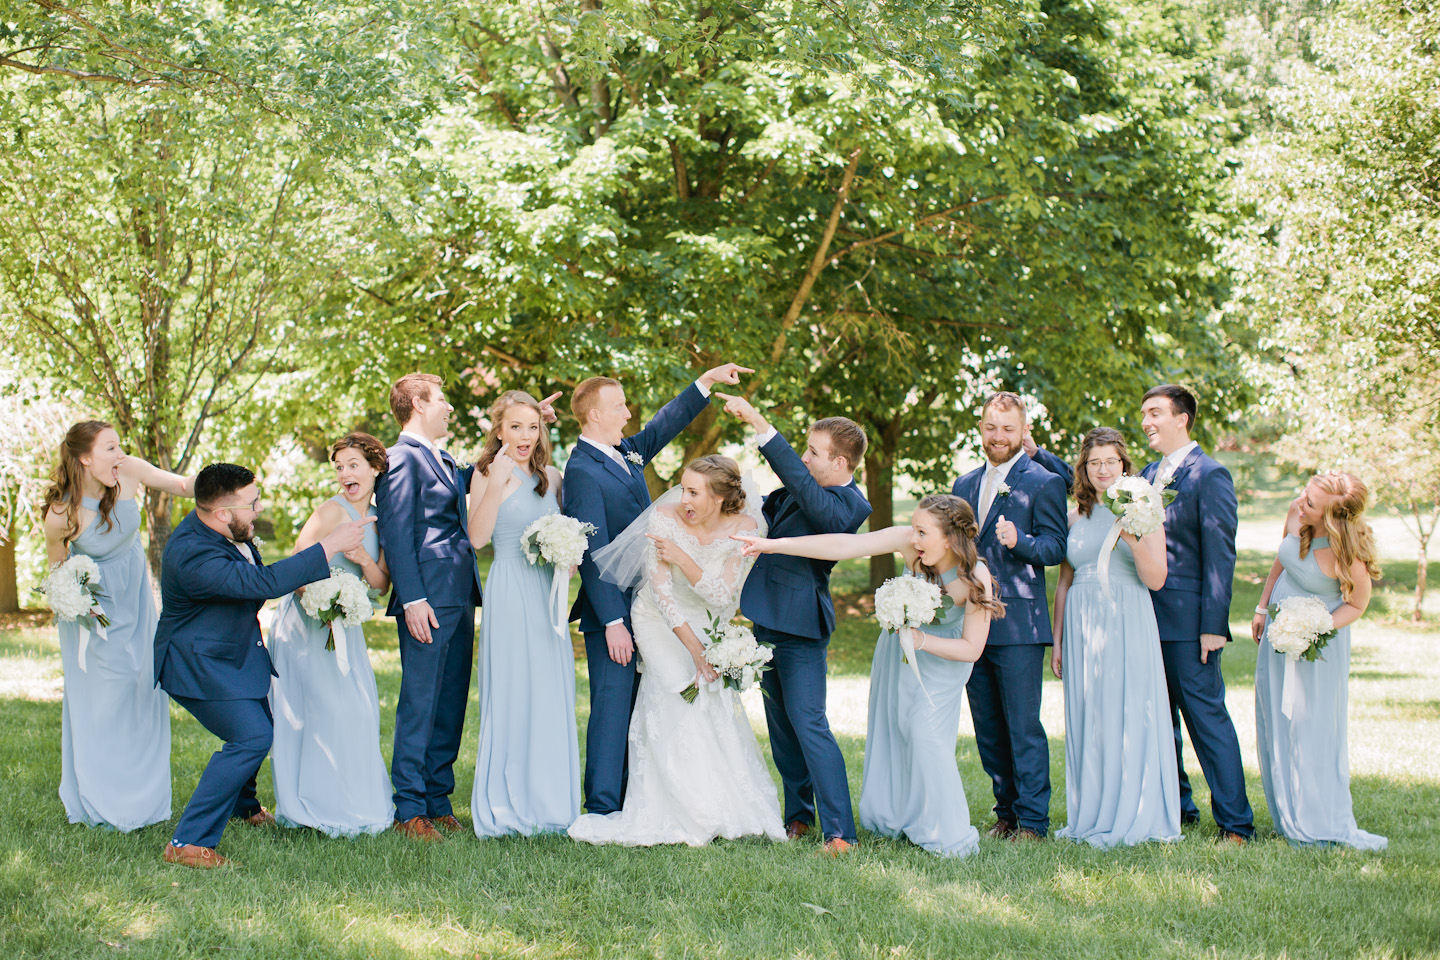 the best Omaha wedding photographers and videographers